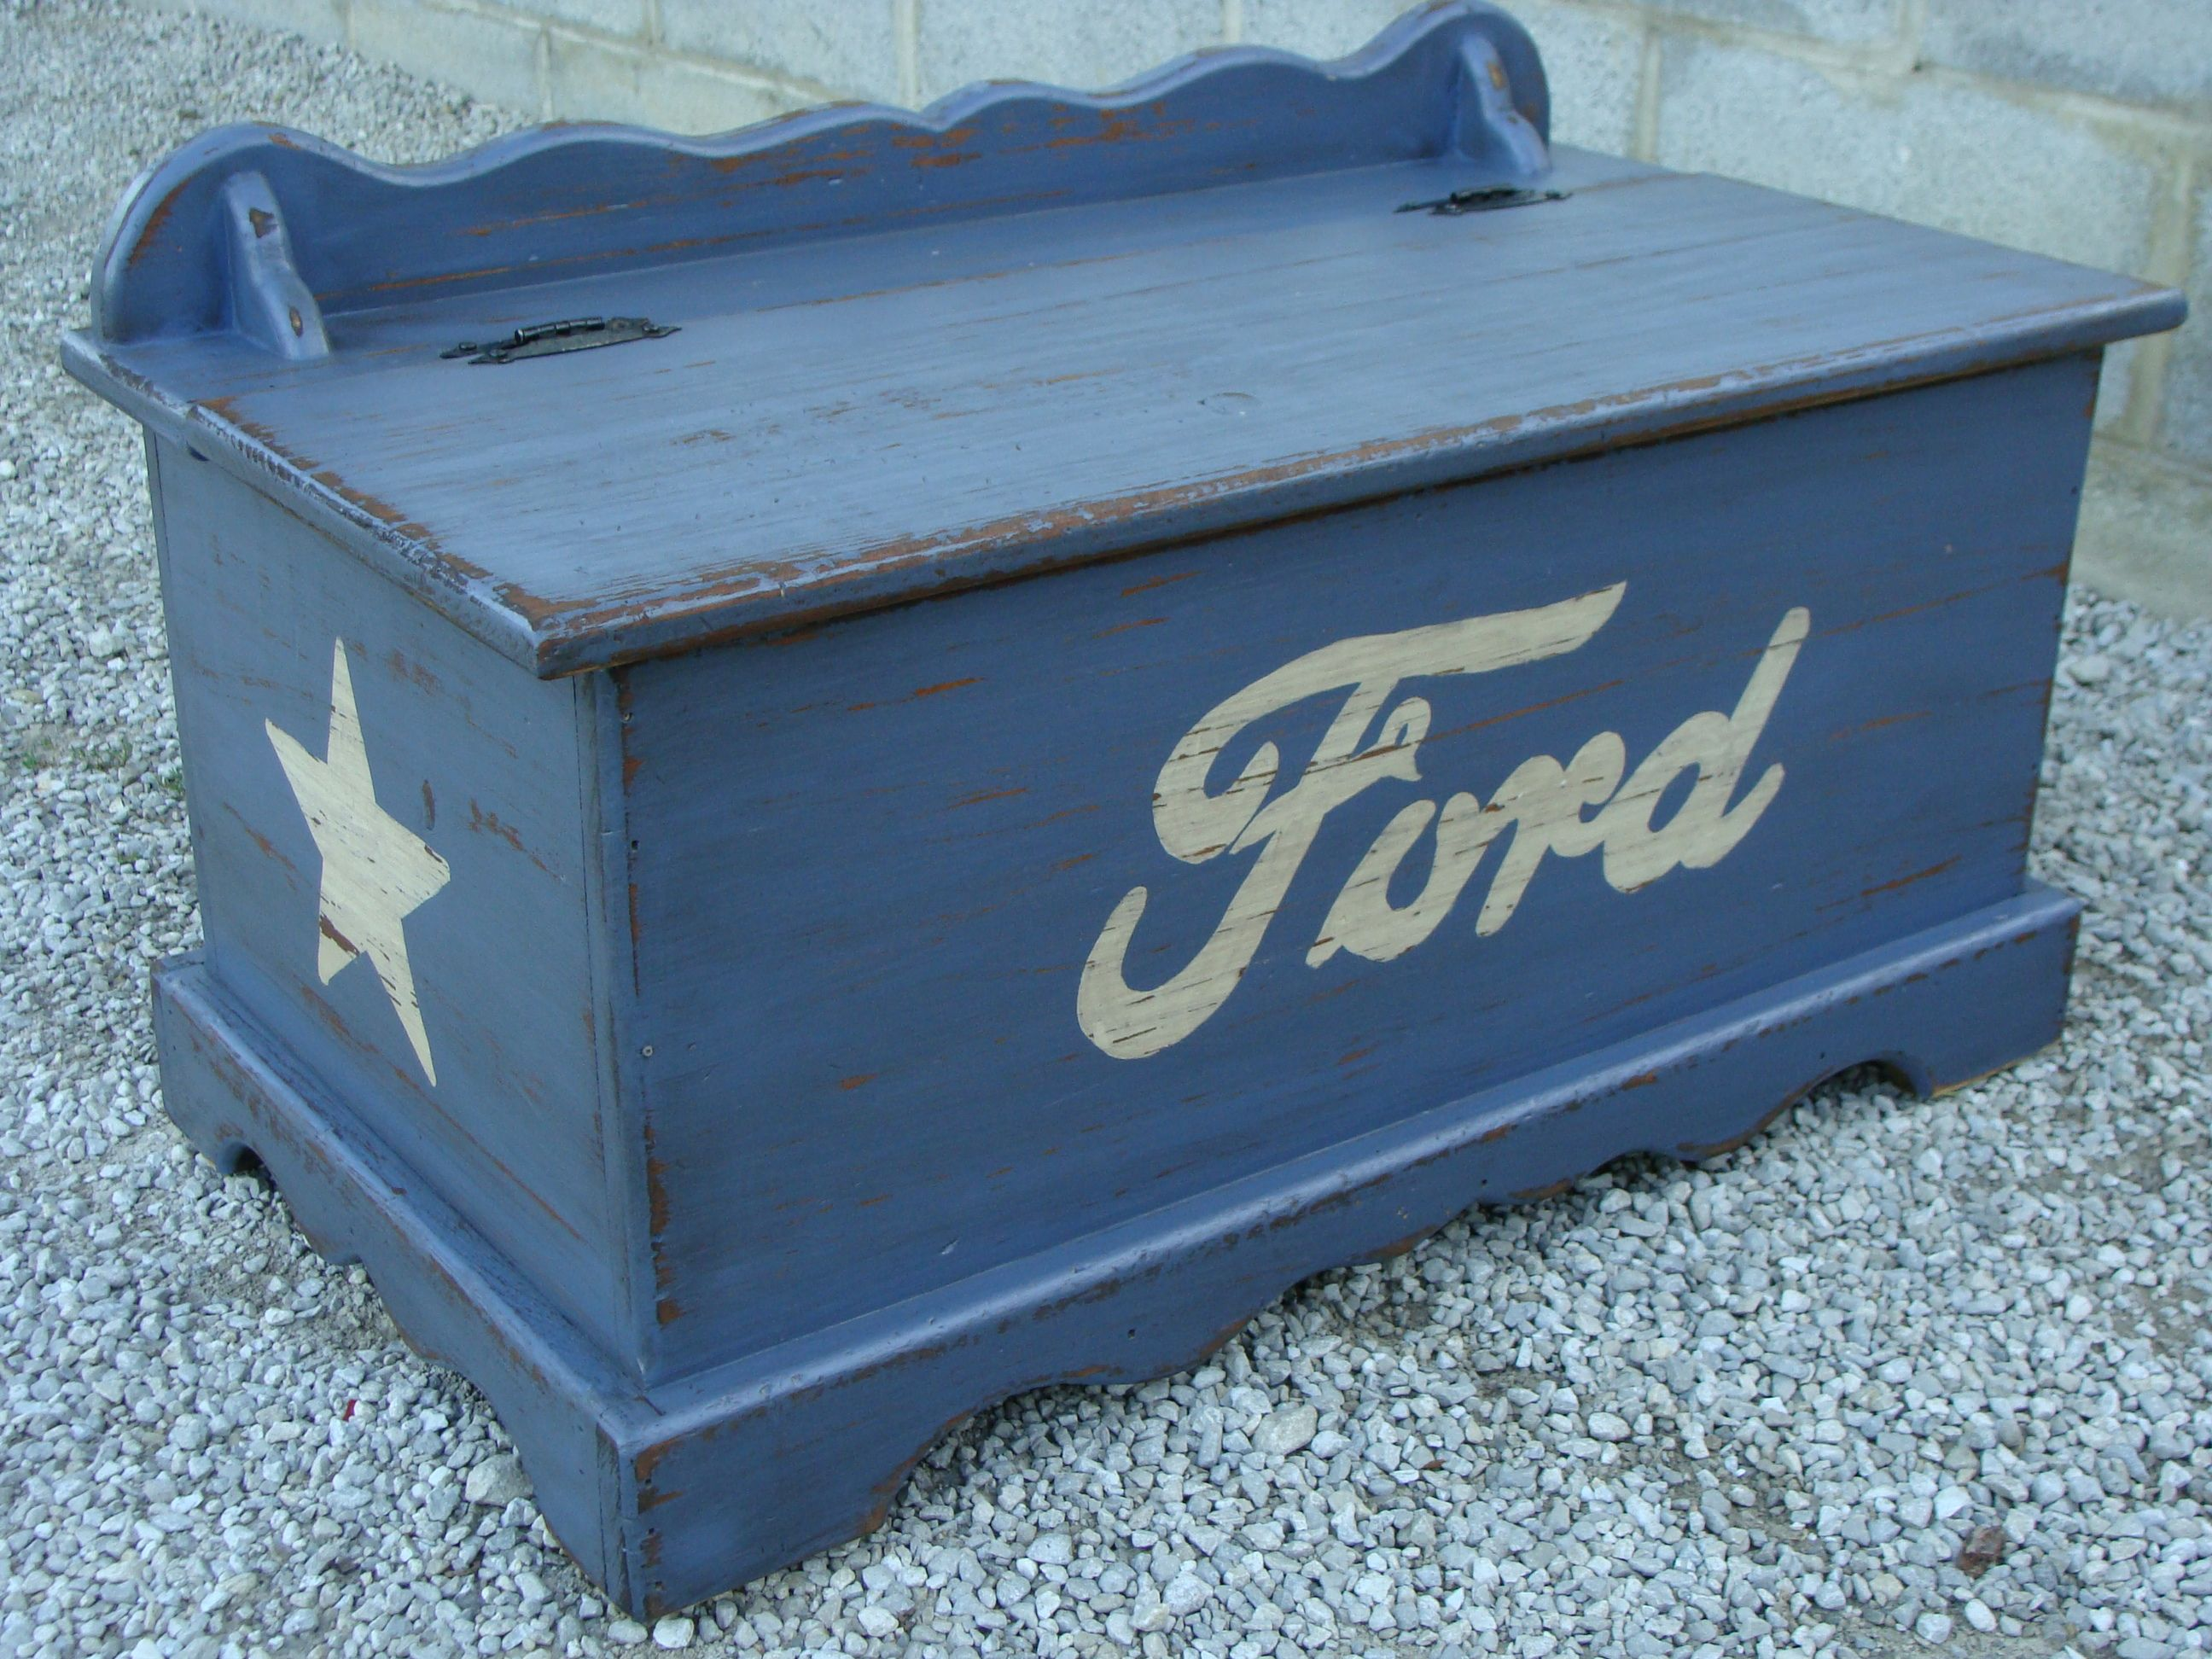 Toys toy boxes and fire trucks on pinterest - My Childhood Hope Chest Turned Into My Sons Toy Box He Loves Ford Mustangs